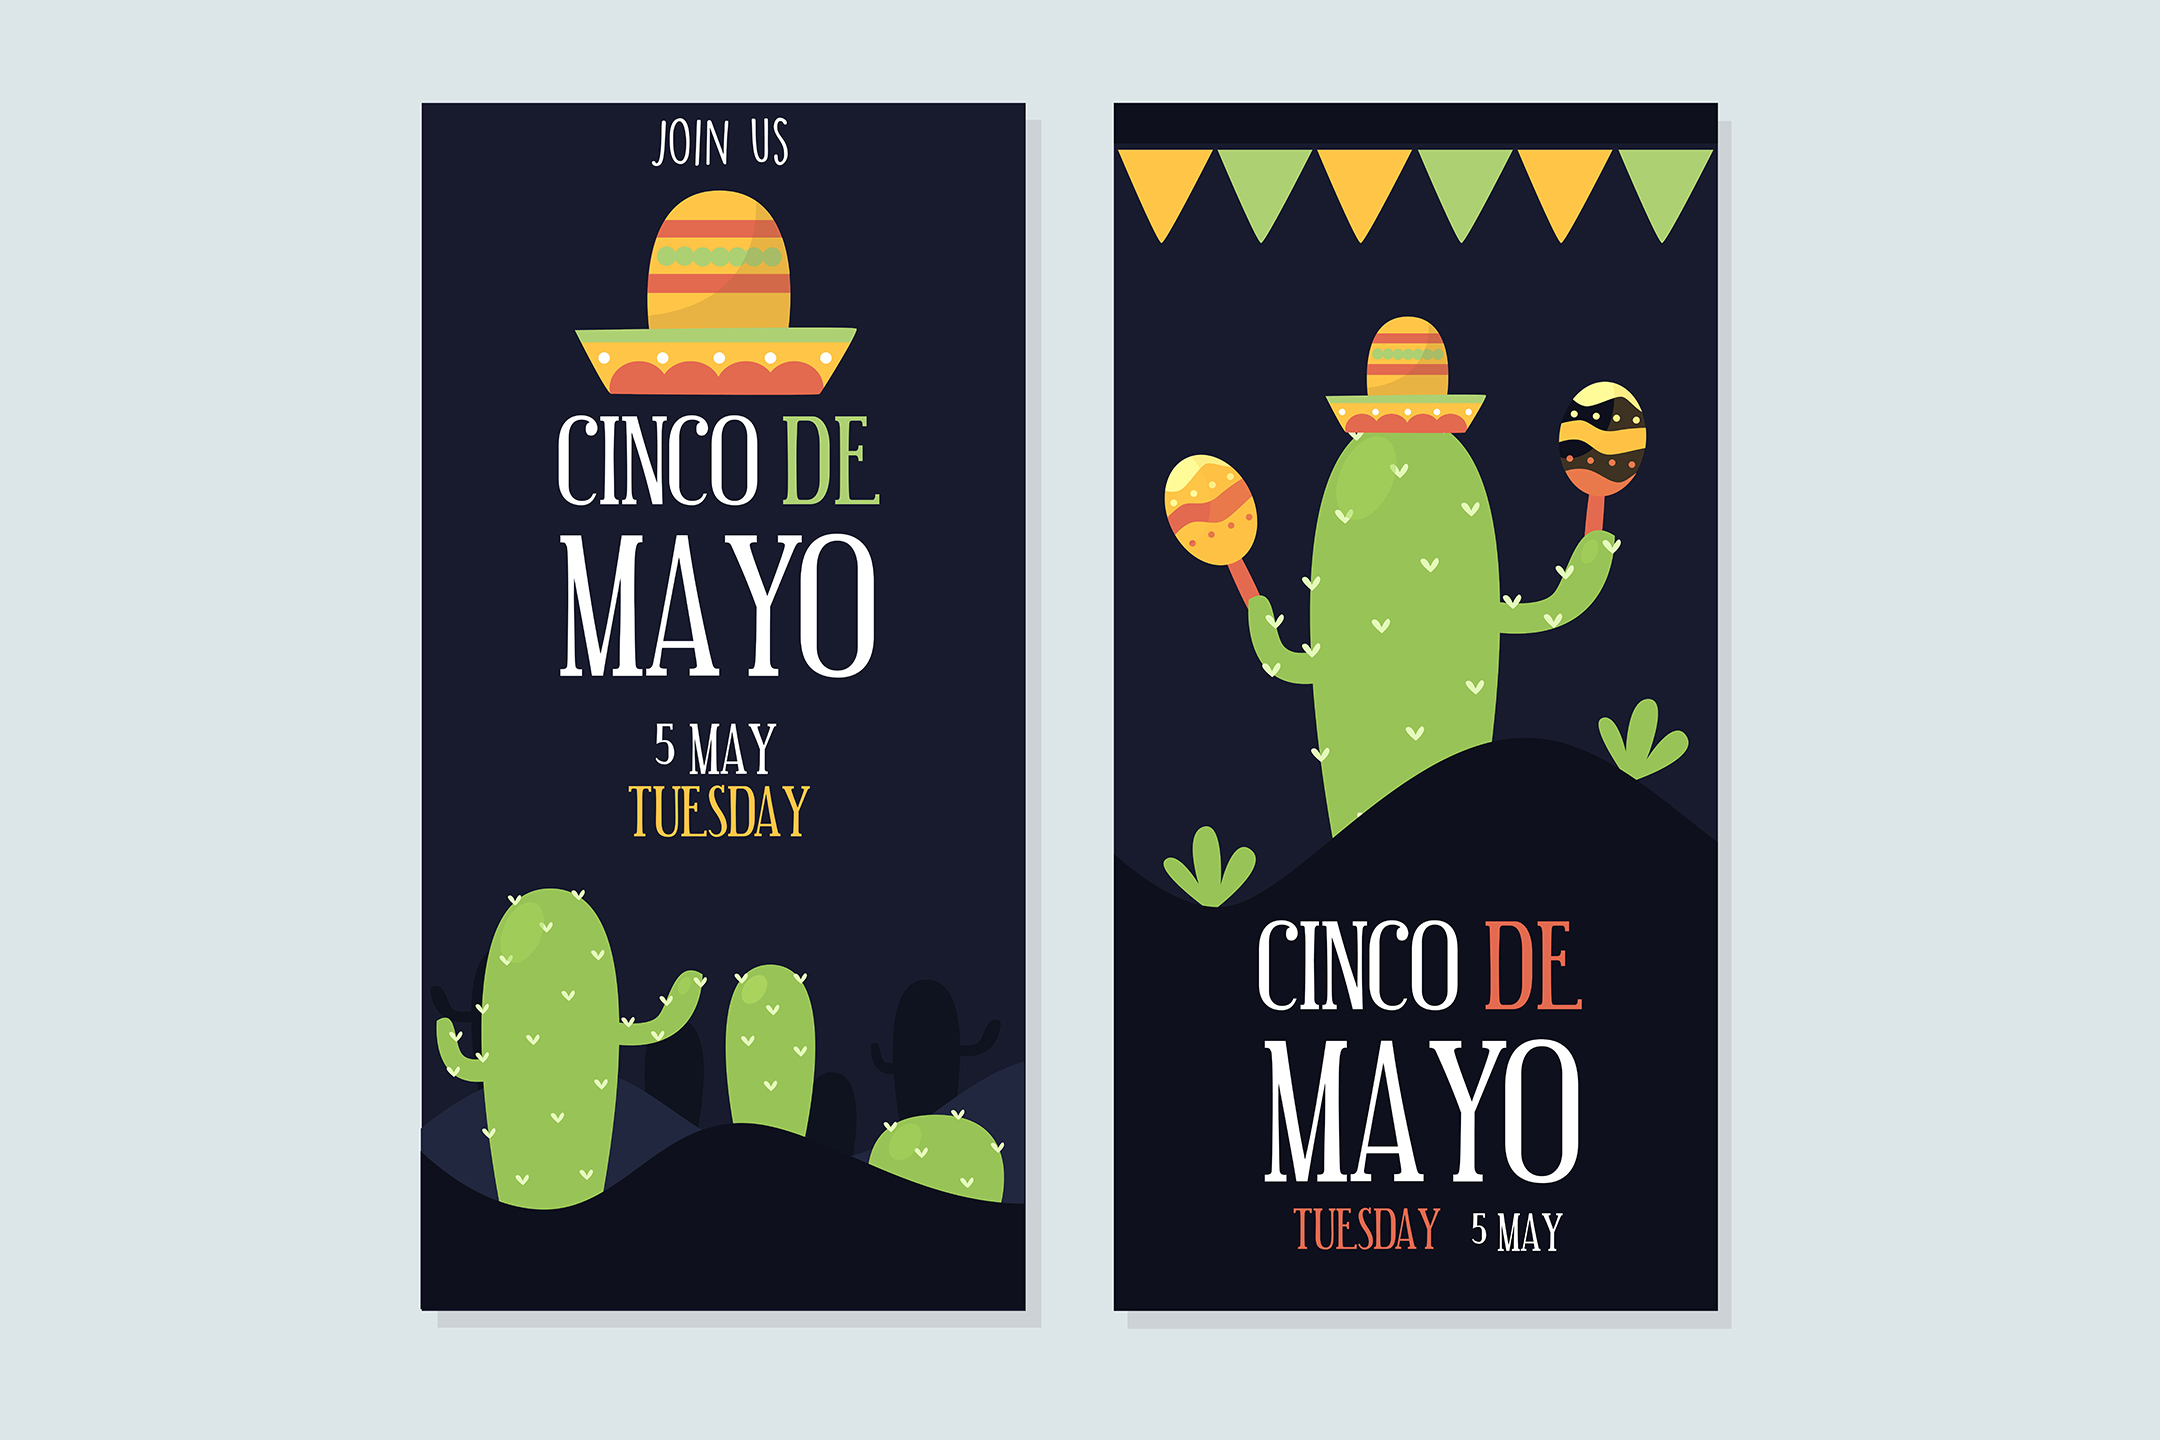 Download Free Cinco De Mayo Set Banners Mexican Graphic By Aprlmp276 for Cricut Explore, Silhouette and other cutting machines.